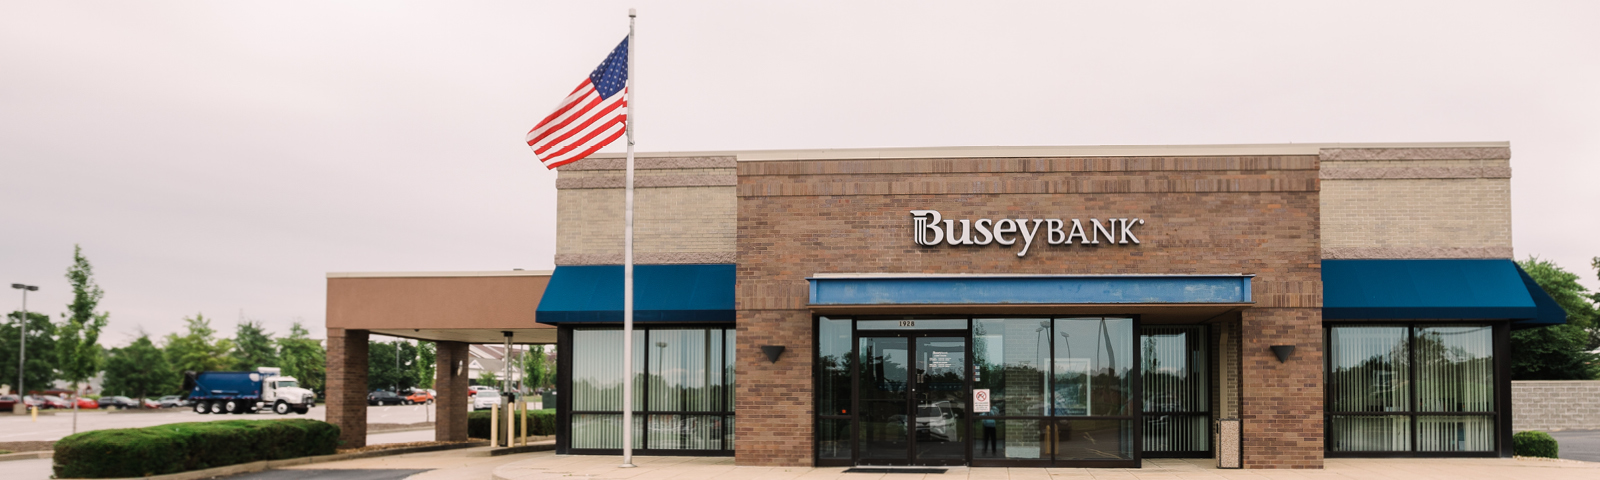 Busey Bank St. Charles location